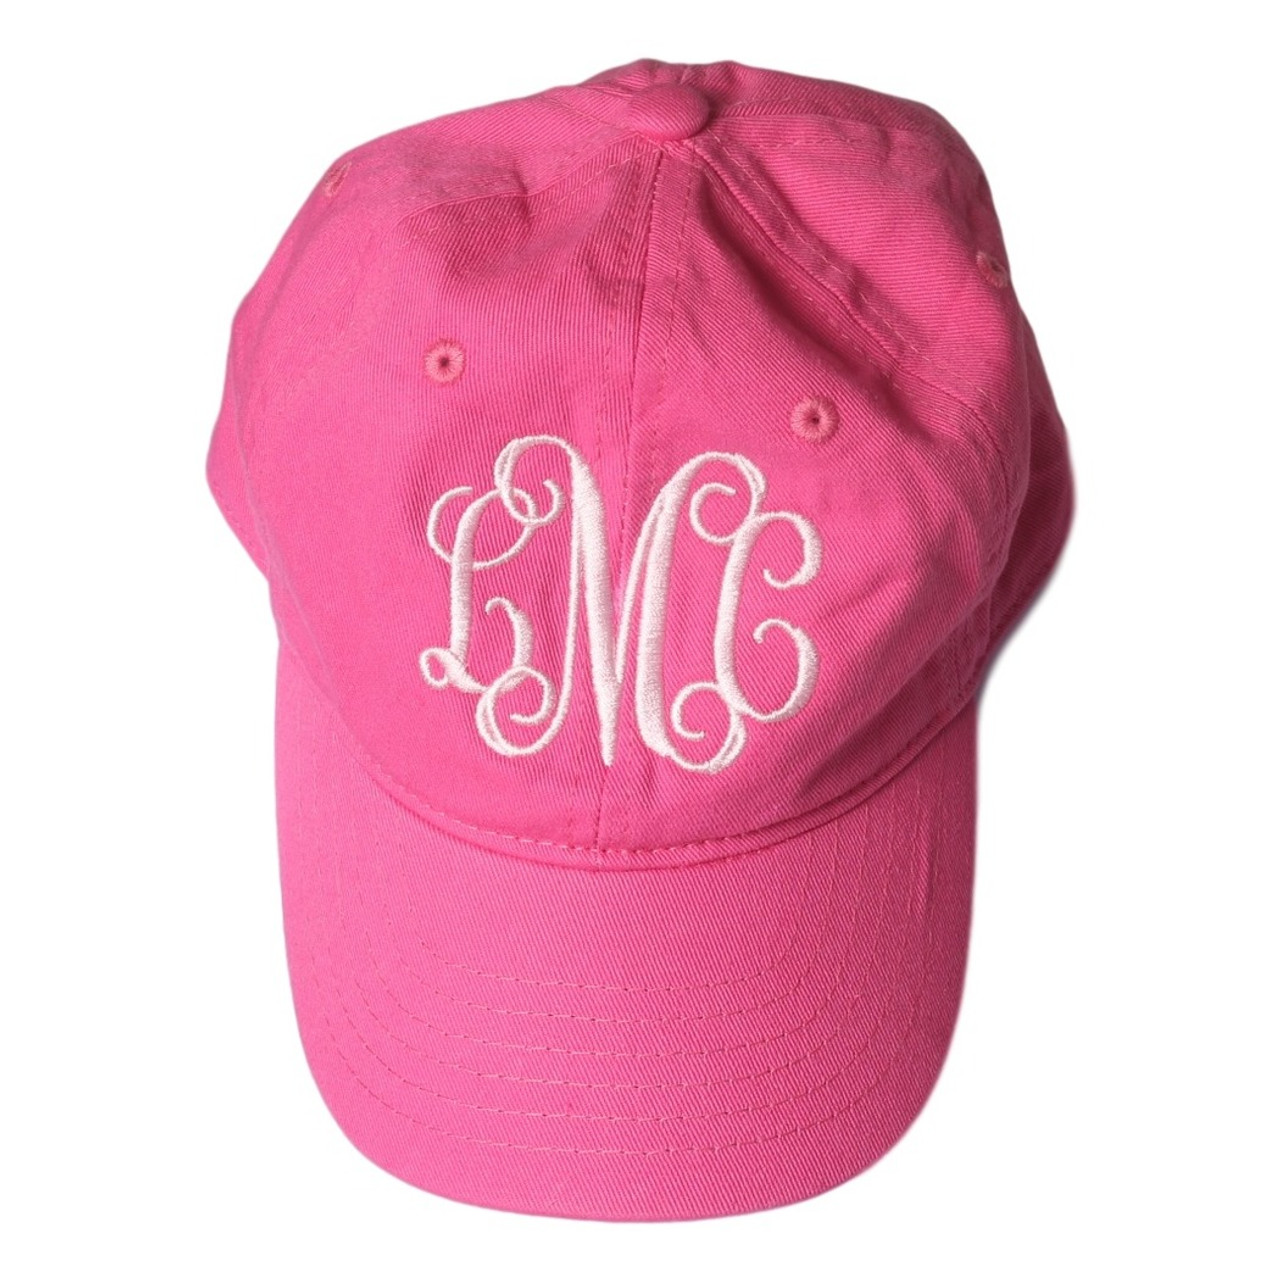 e12731900b18a  Please Allow Additional Time for Monograms Want A Light Pink Vine Monogram    ↞ Check the box to add a Light Pink Vine Monogram (+ 10.00)